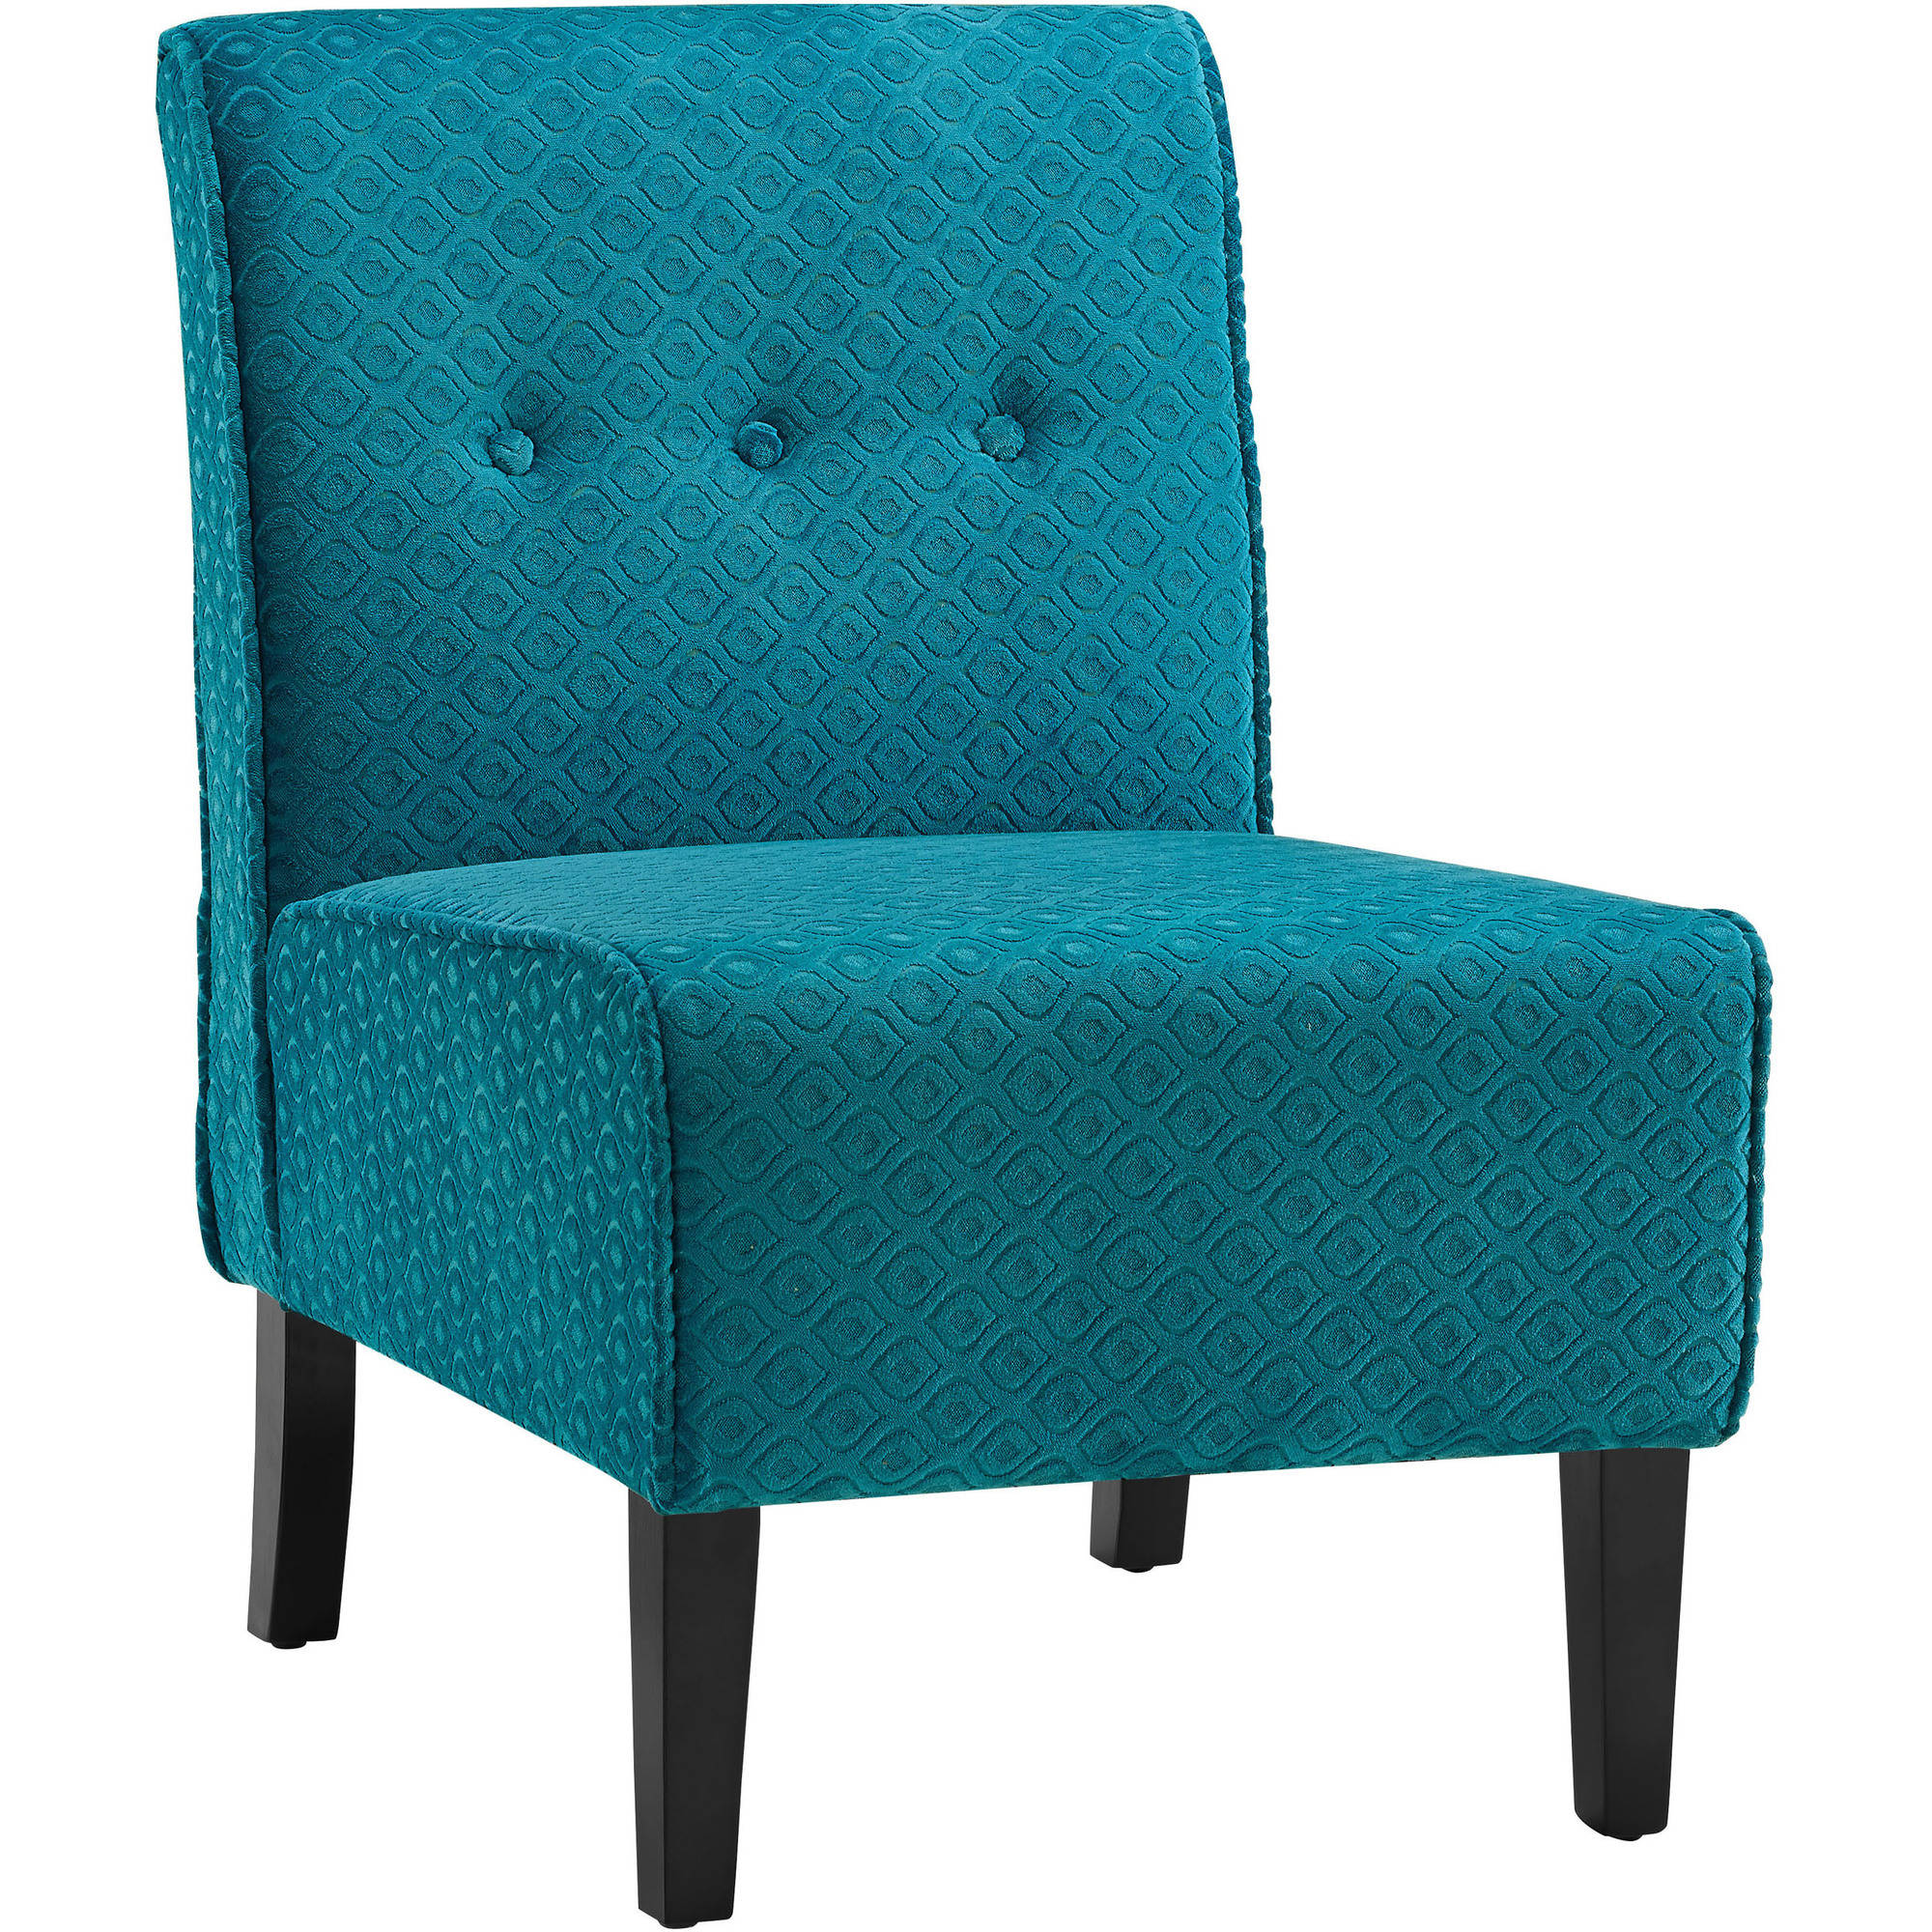 Coco Teal Blue Accent Chair by Linon Home Dᅢᄅcor Products Inc